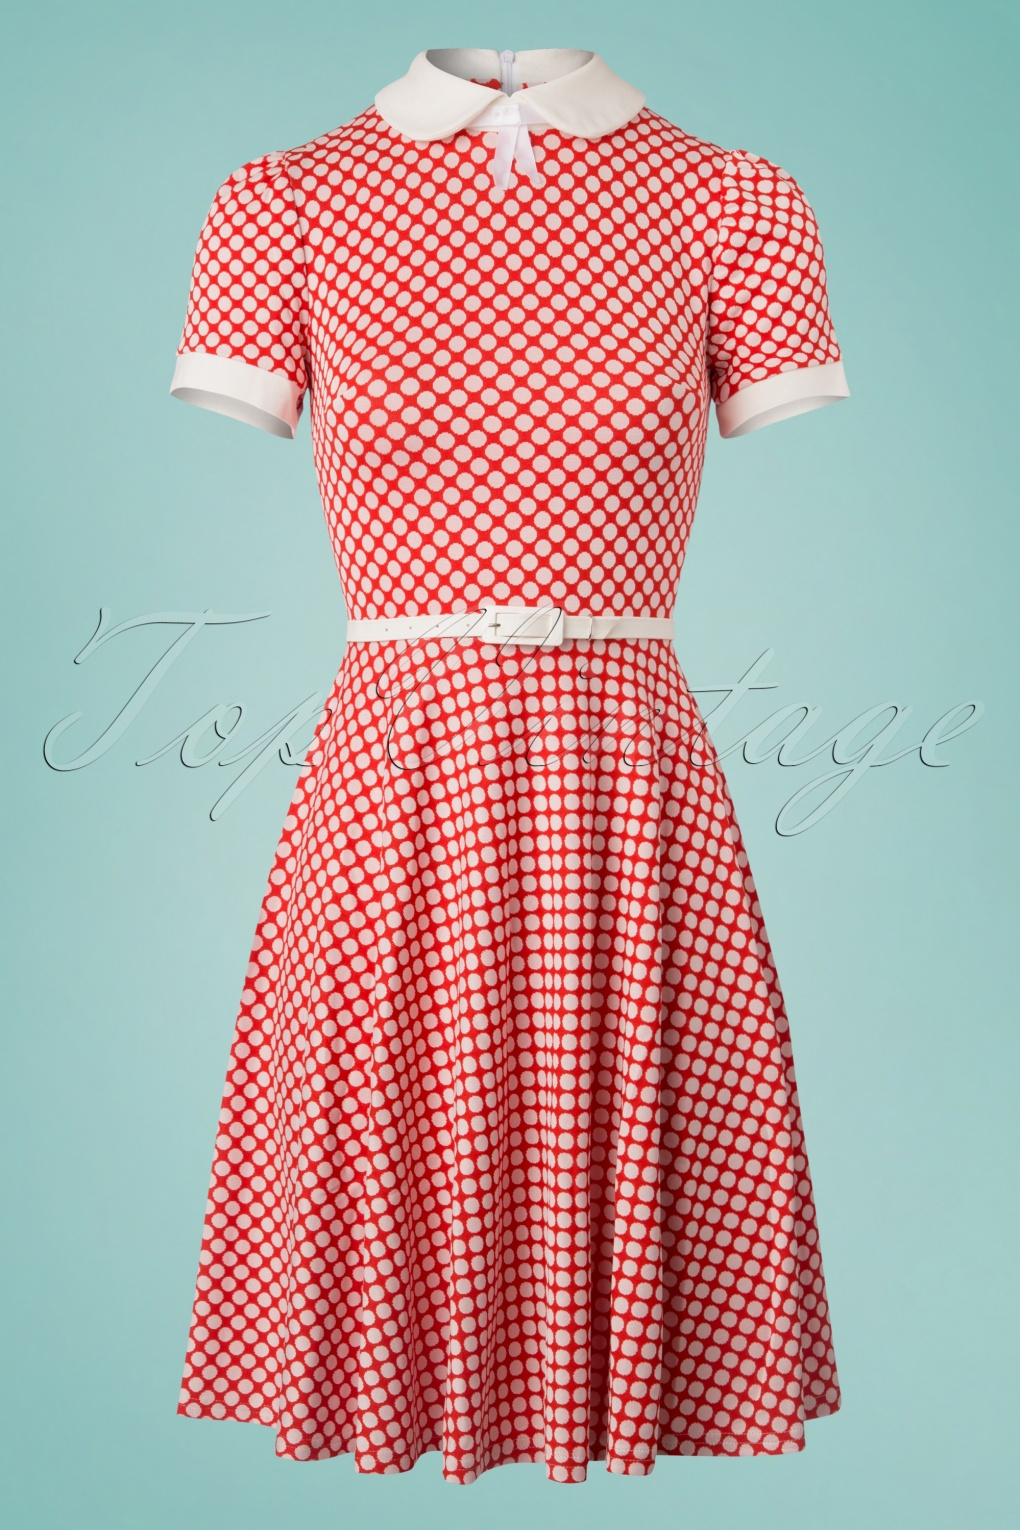 500 Vintage Style Dresses for Sale 60s Jersey Polkadot Flared Dress in Red and White £118.40 AT vintagedancer.com